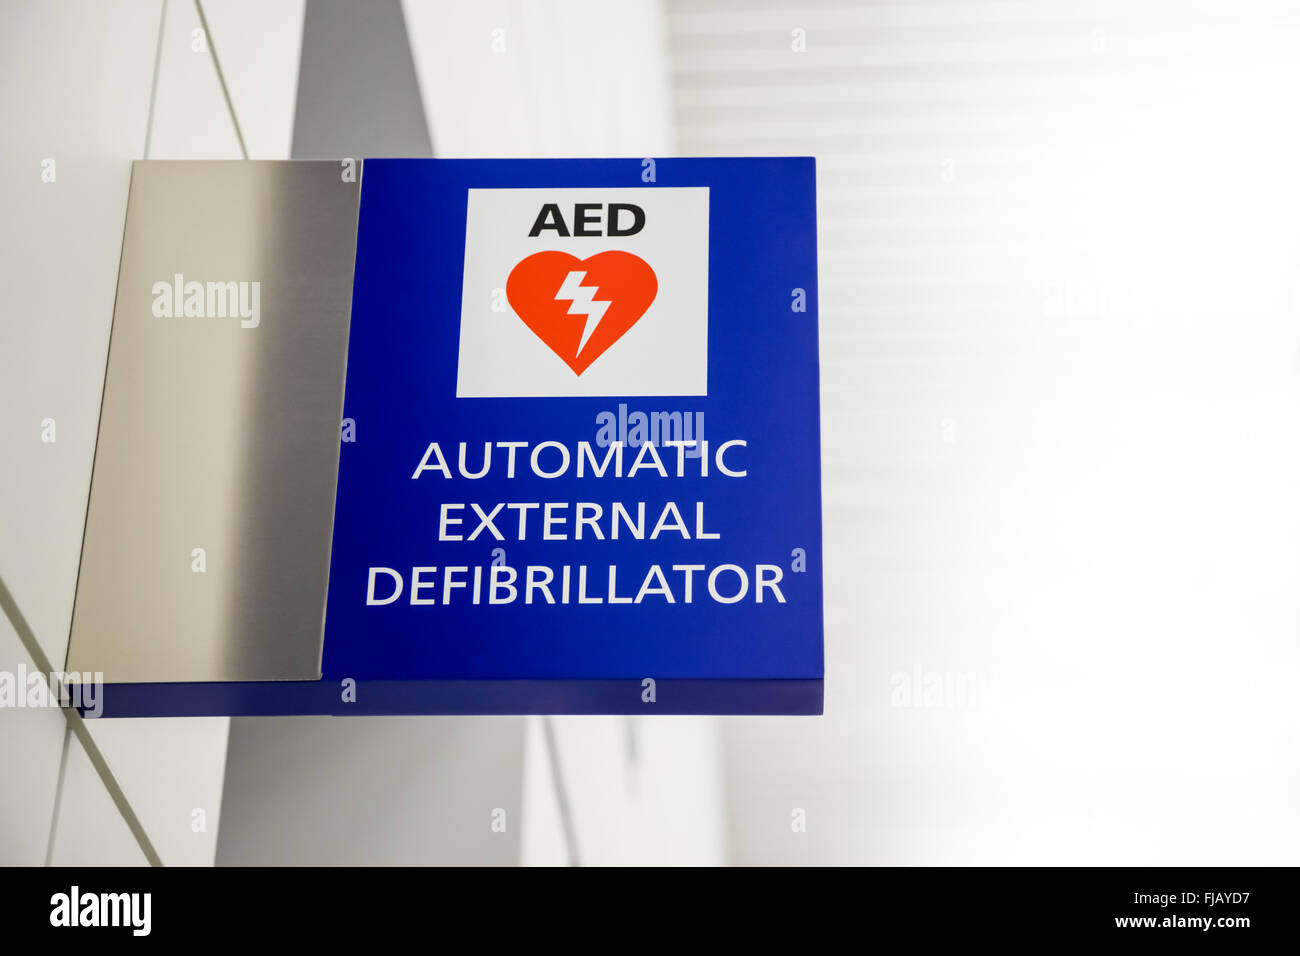 AED Automated External Defibrillator Sign at an airport. Stock Photo